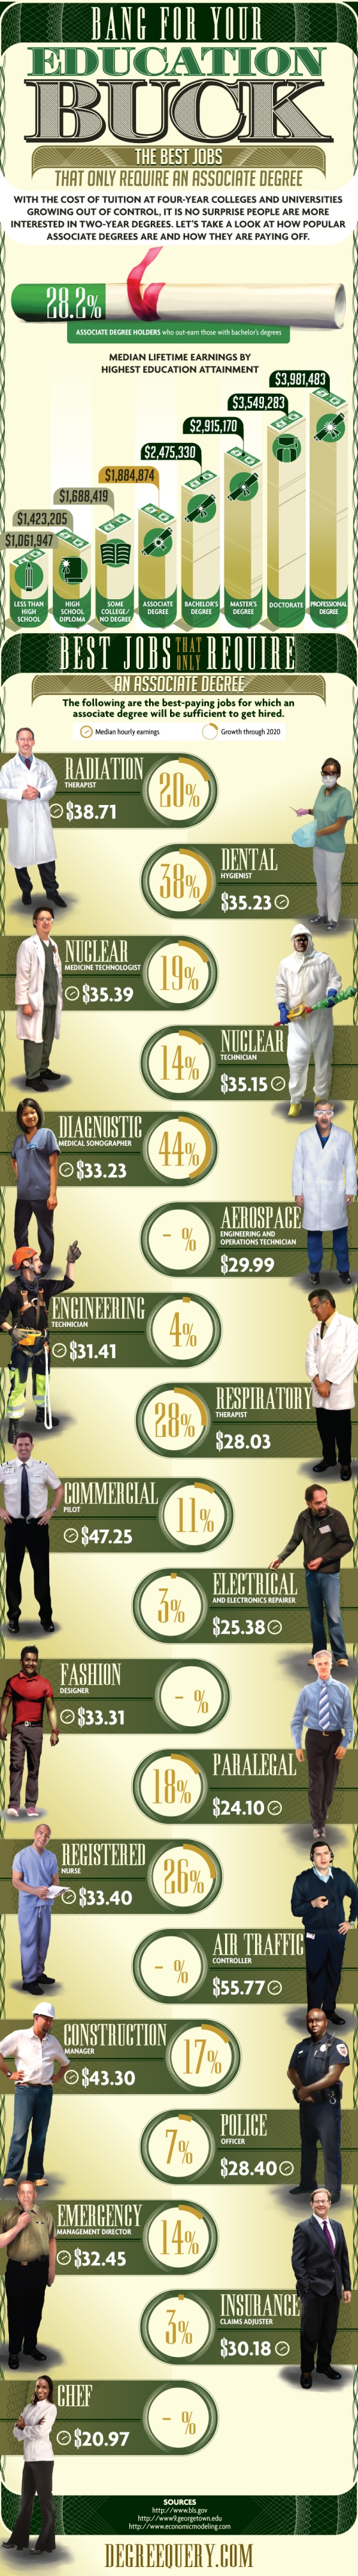 More Bang For Your Buck: Associate's Degrees